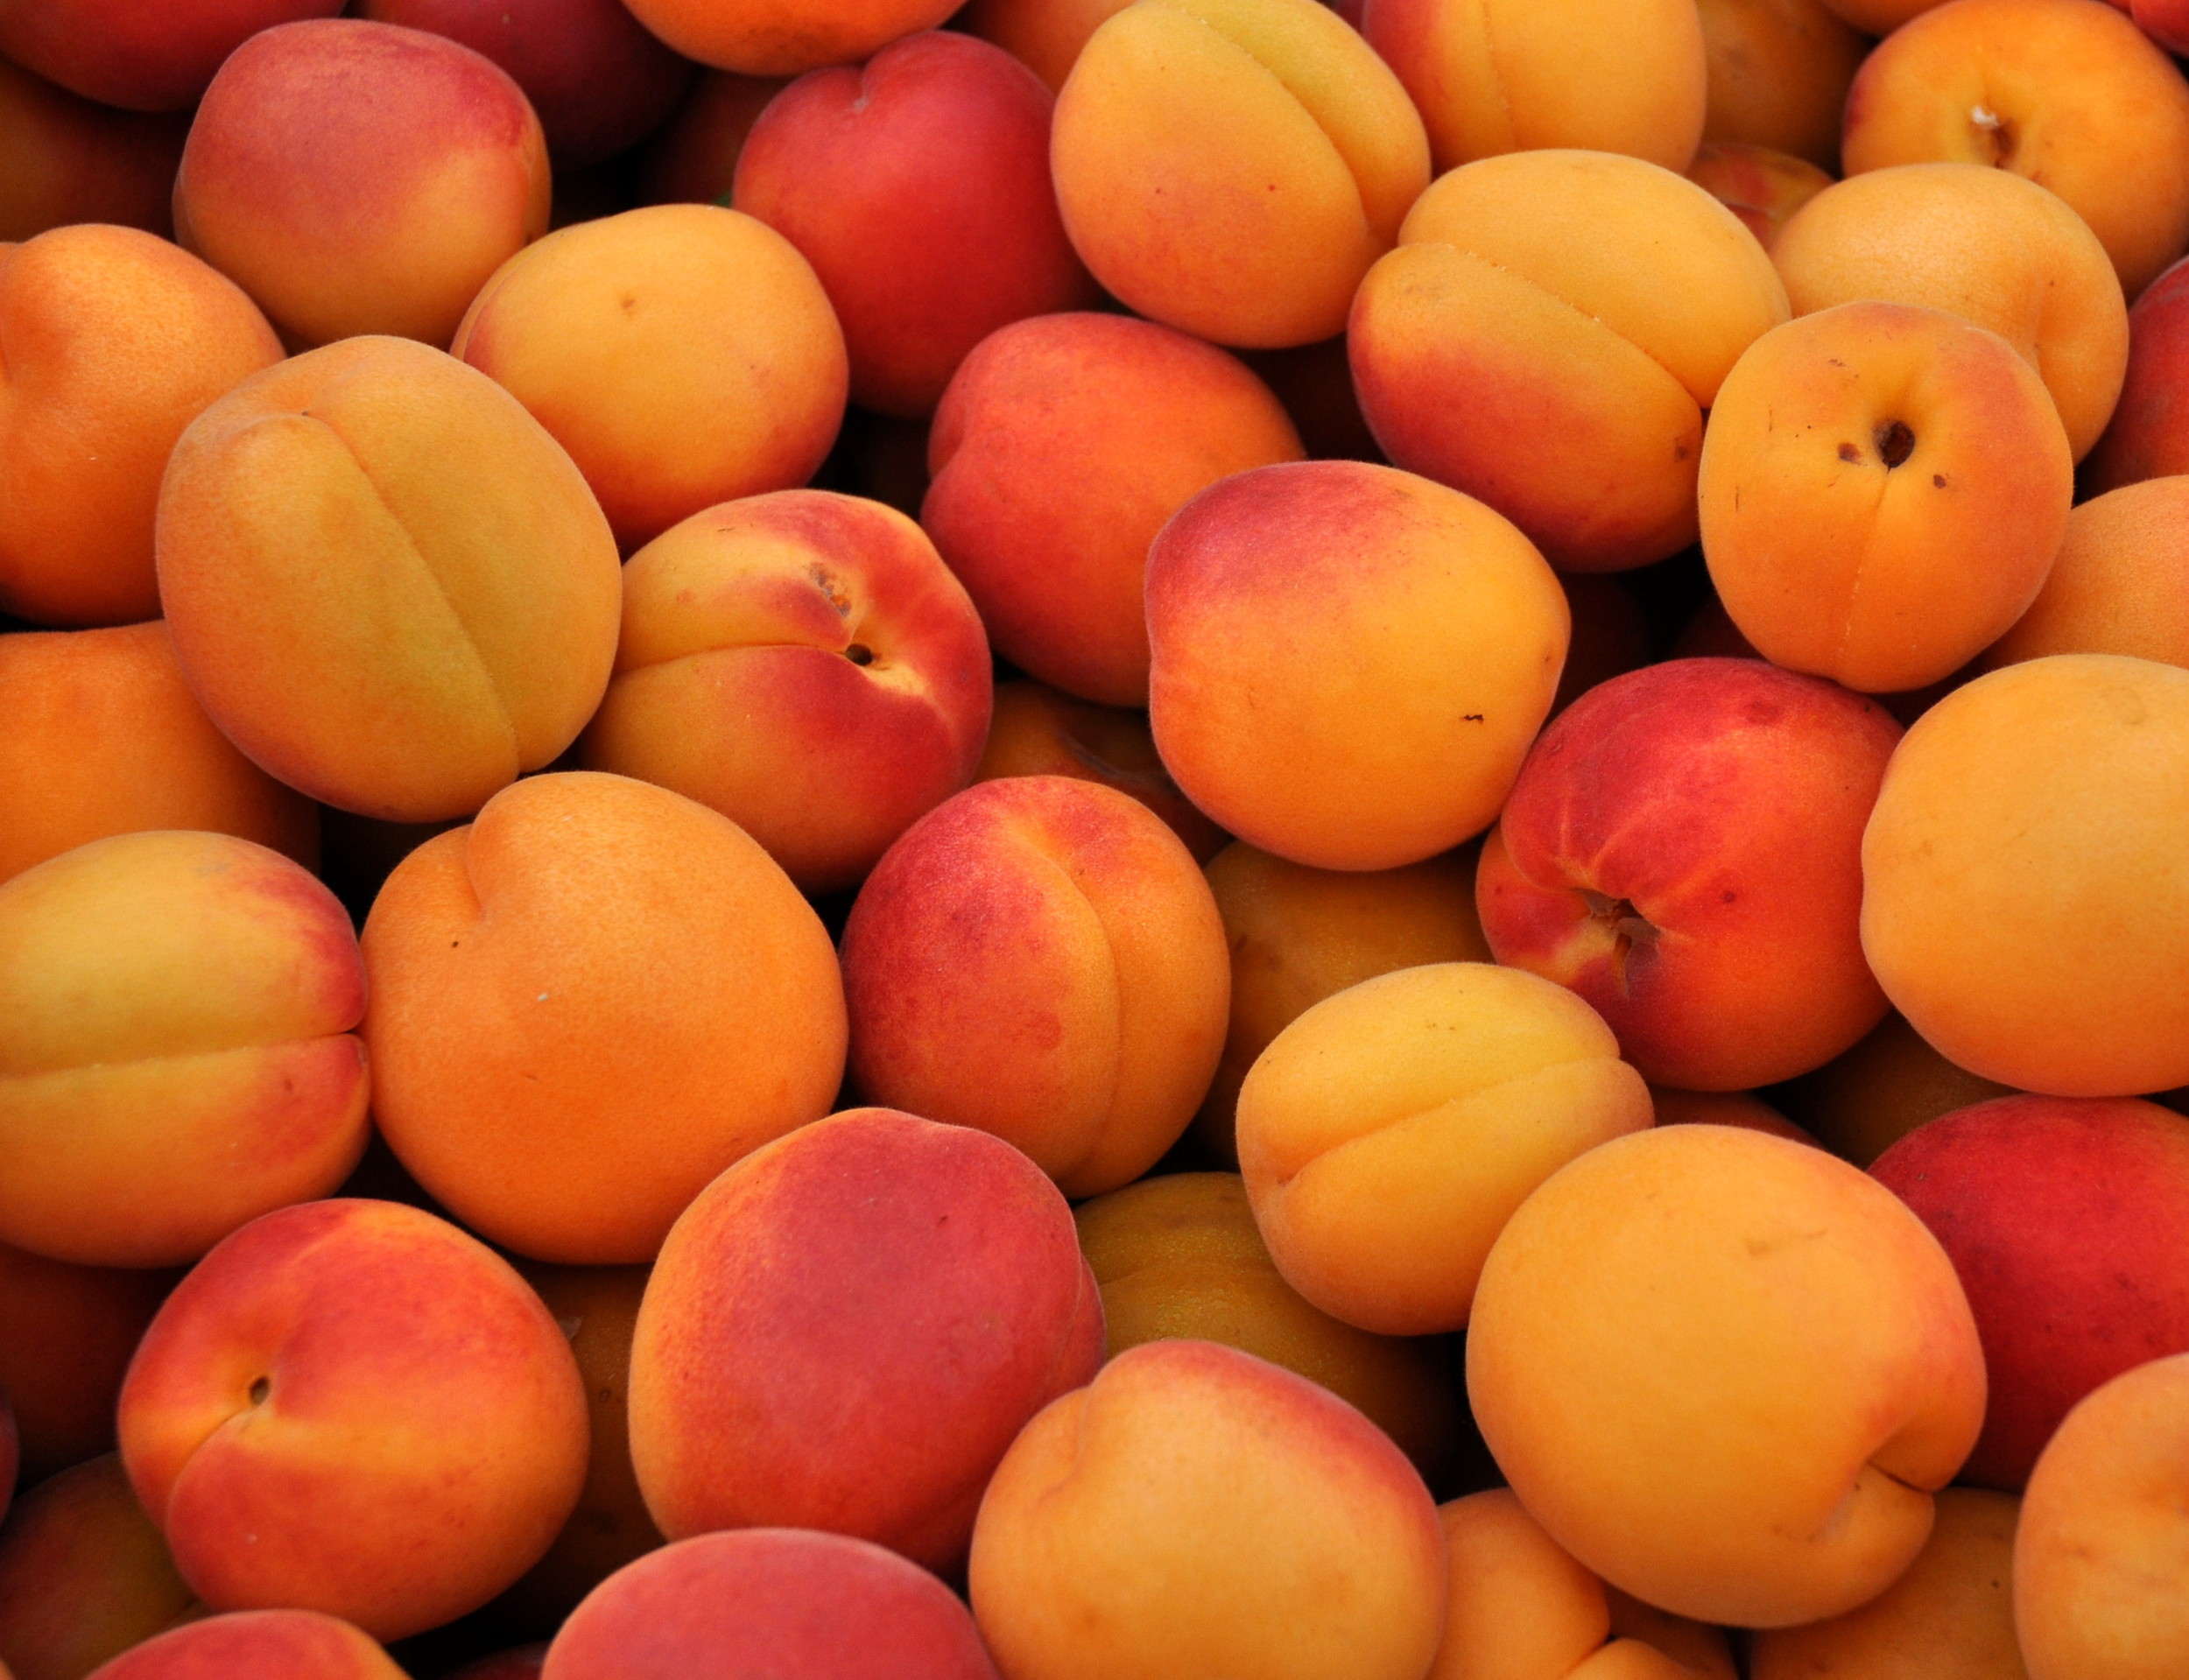 Gold Rich apricots from ACMA Mission Orchards. Photo copyright 2013 by Zachary D. Lyons.